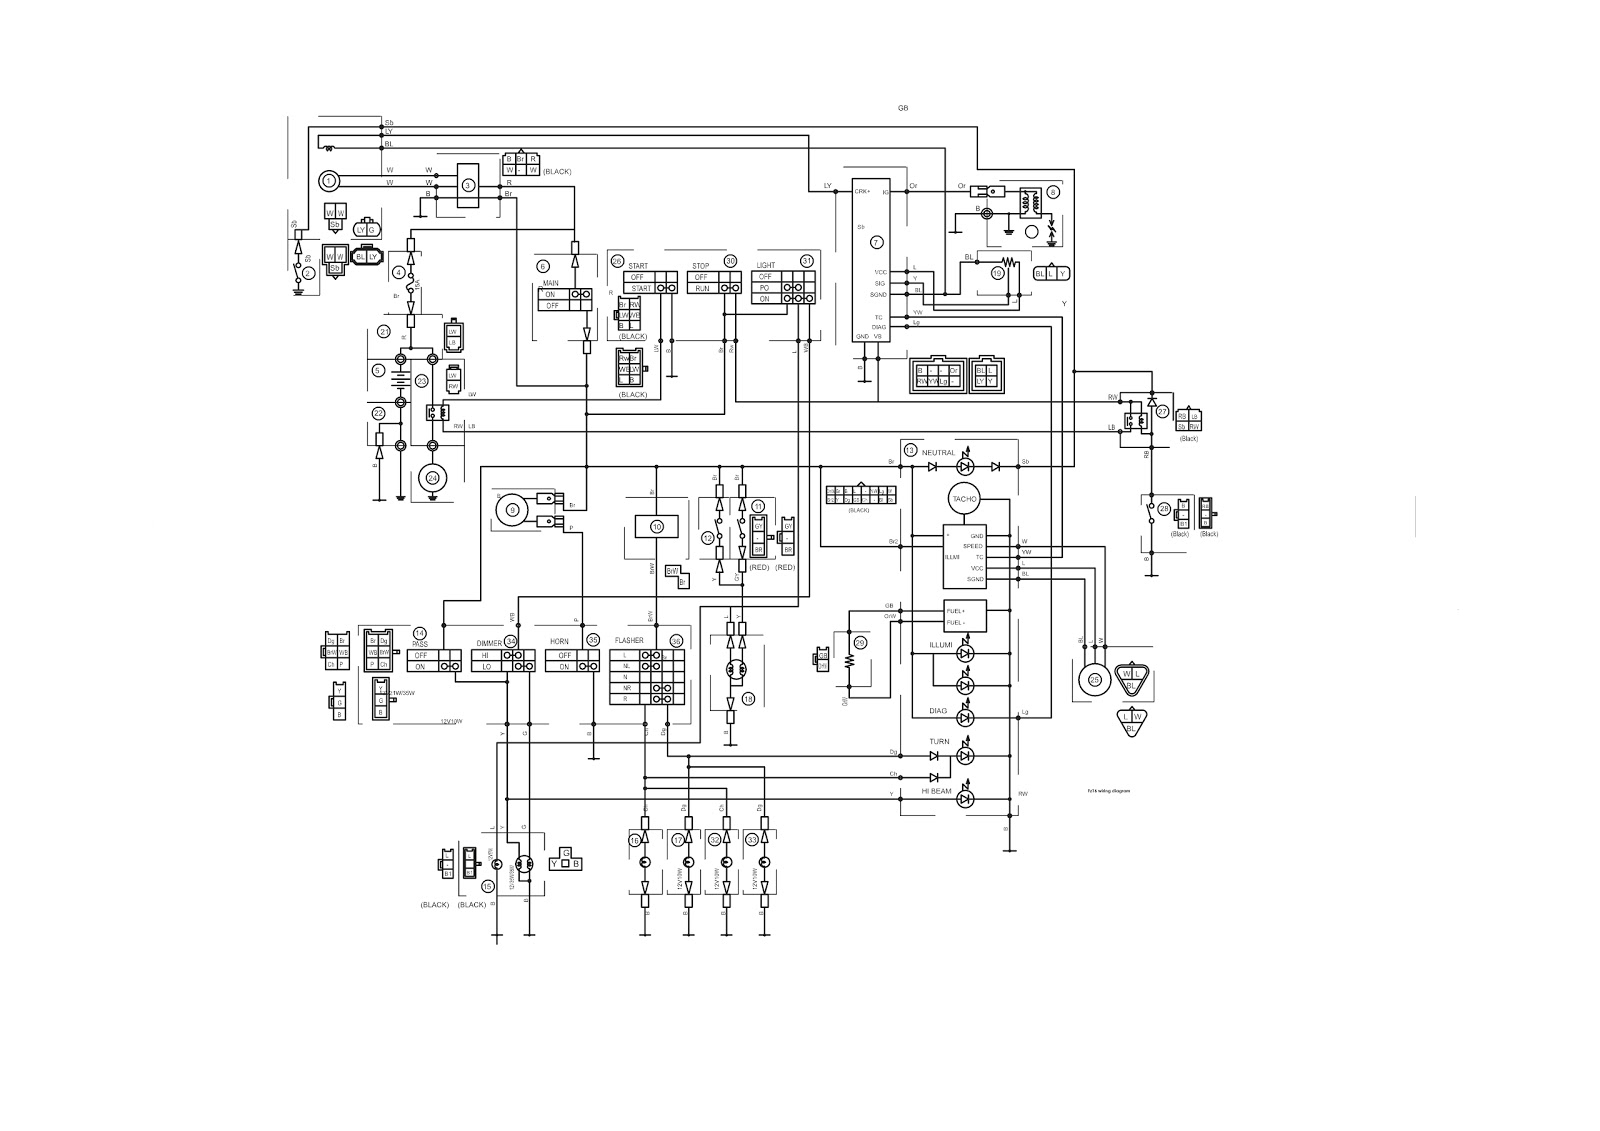 Yamaha Warrior Ignition Switch Wiring Diagram